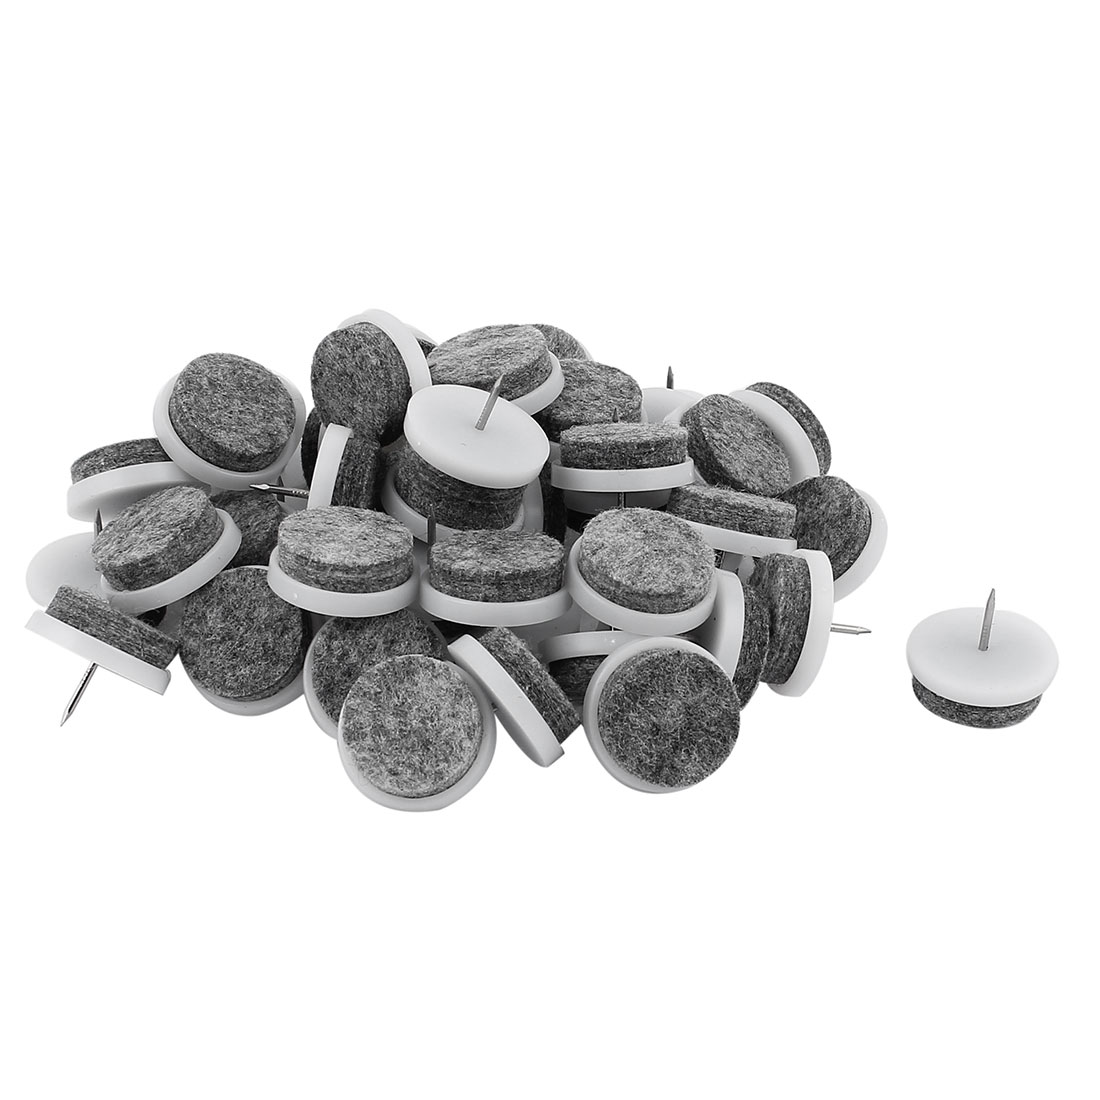 pads for chair legs gaming recliner target table leg glides furniture nail protector feet 50pcs departments